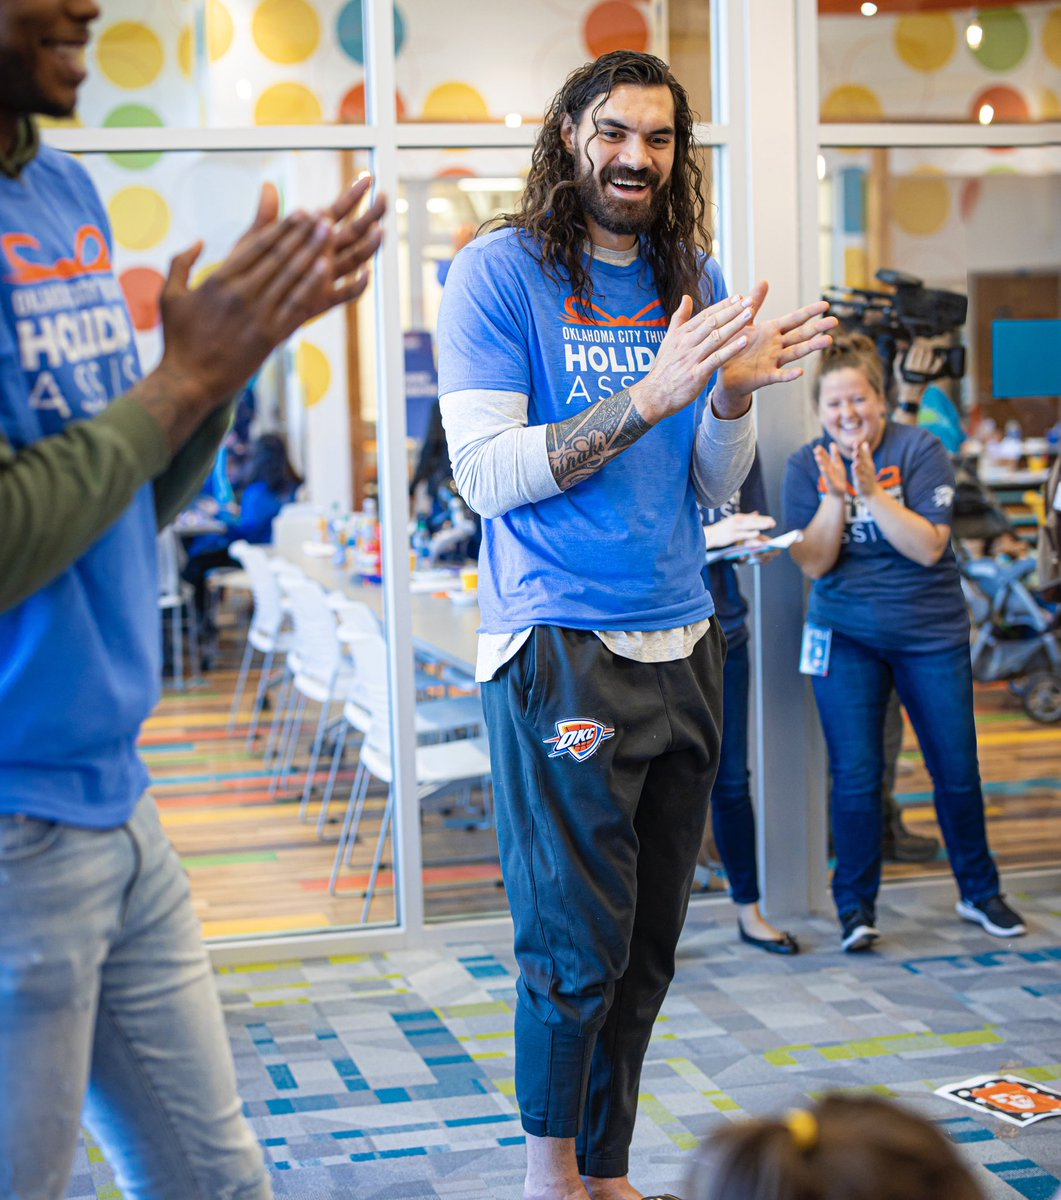 """""""What we're doing here…. is just to have a fun day to try to forget about some of the negative stuff. The real work in terms of actual impact is this thing here, this building, this organization. That's the real impact.""""   - Steven Adams on @ptokc"""